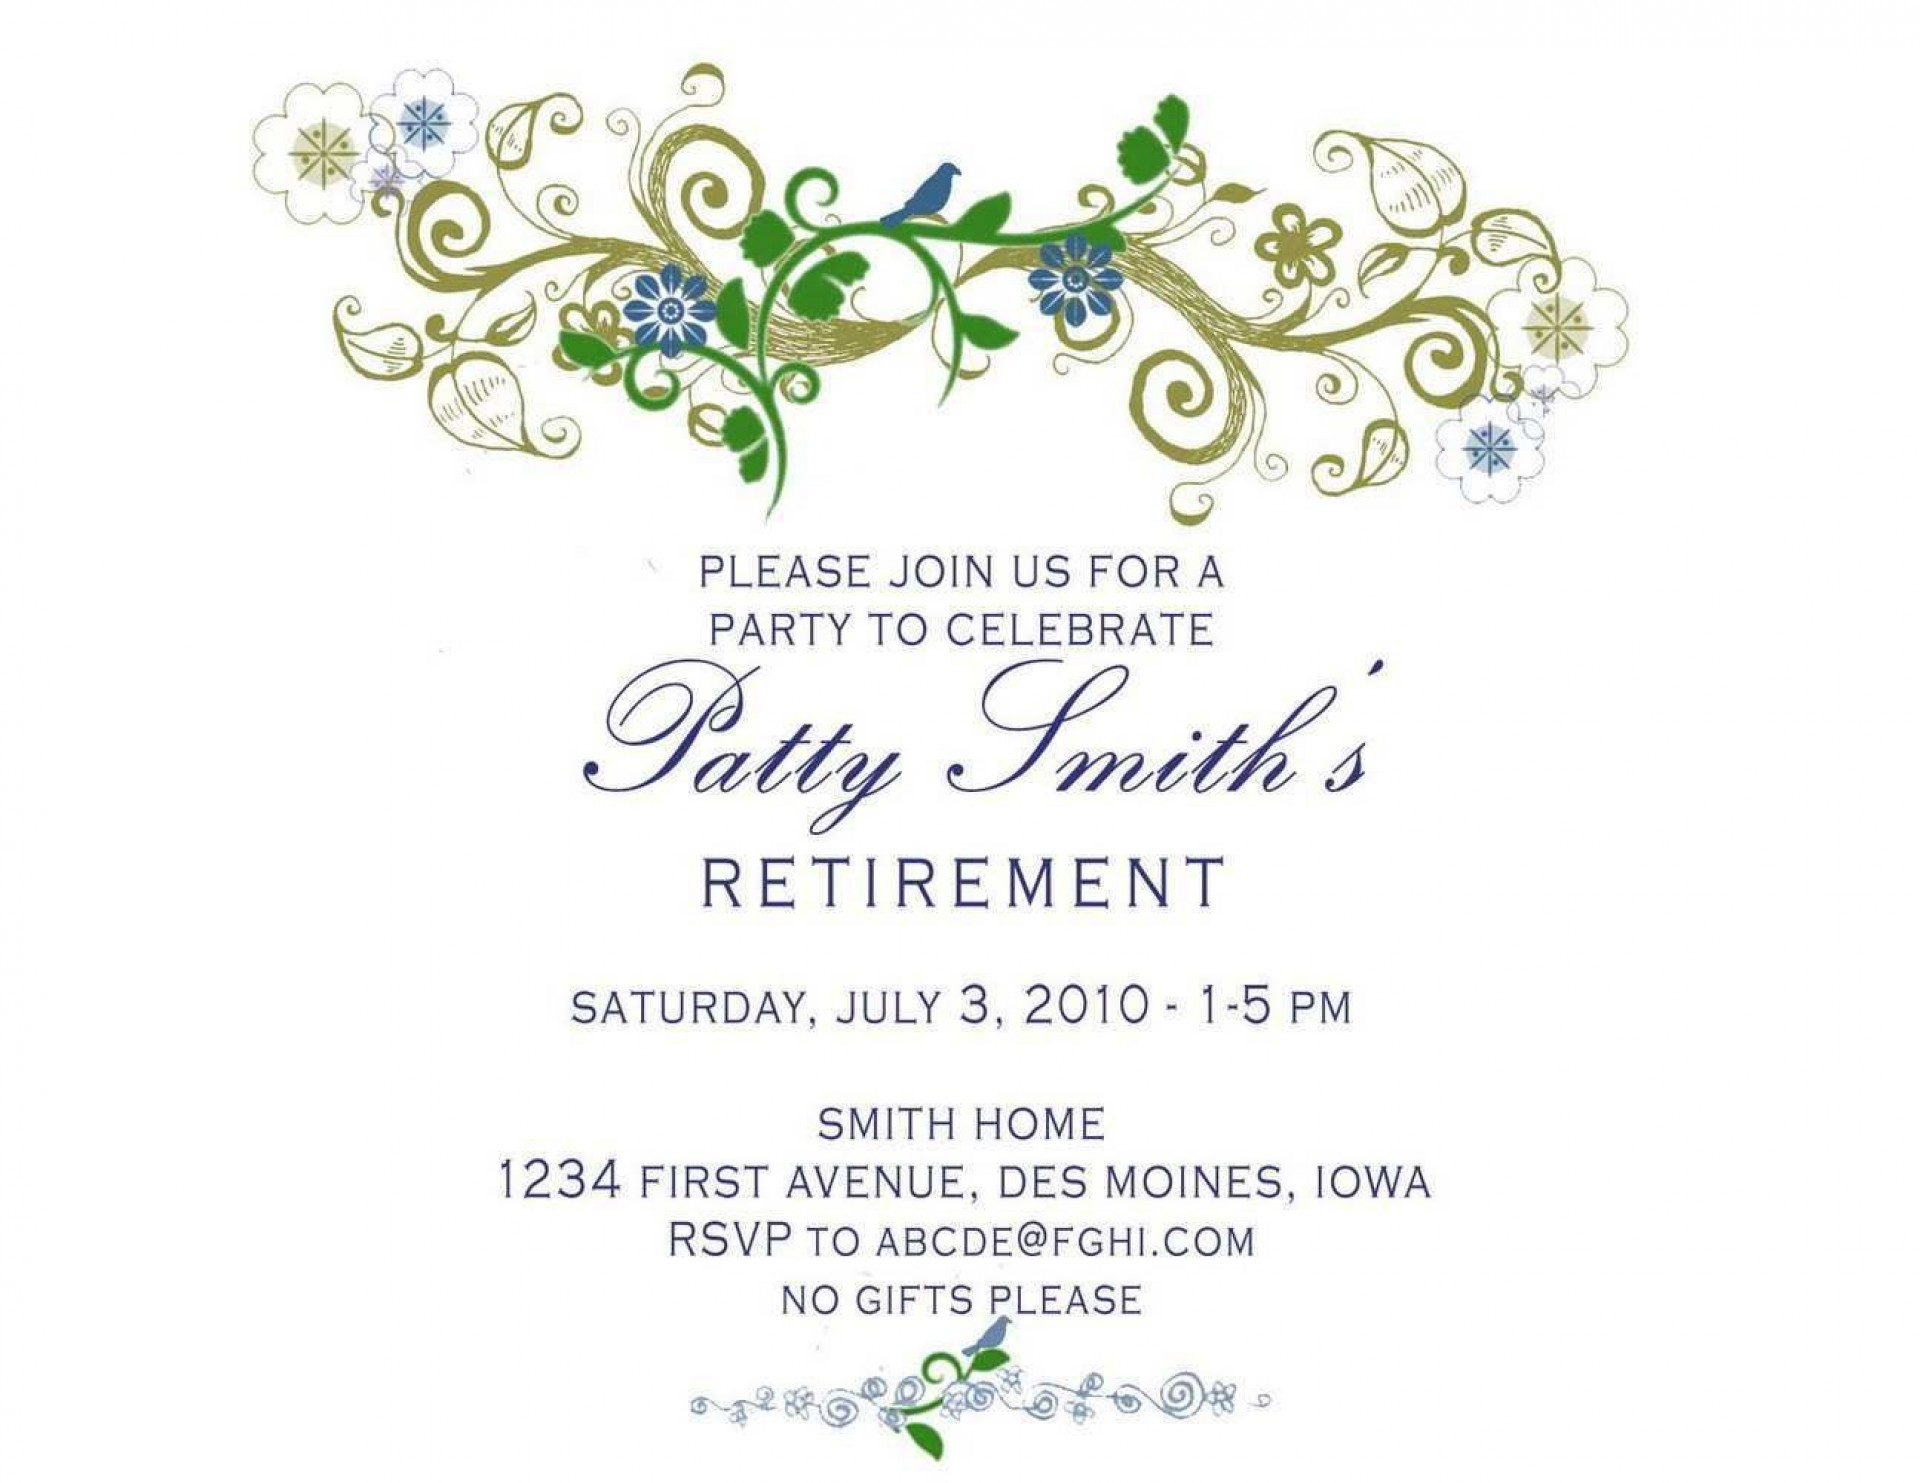 001 Beautiful Retirement Party Invite Template Example  Invitation Online M Word Free1920